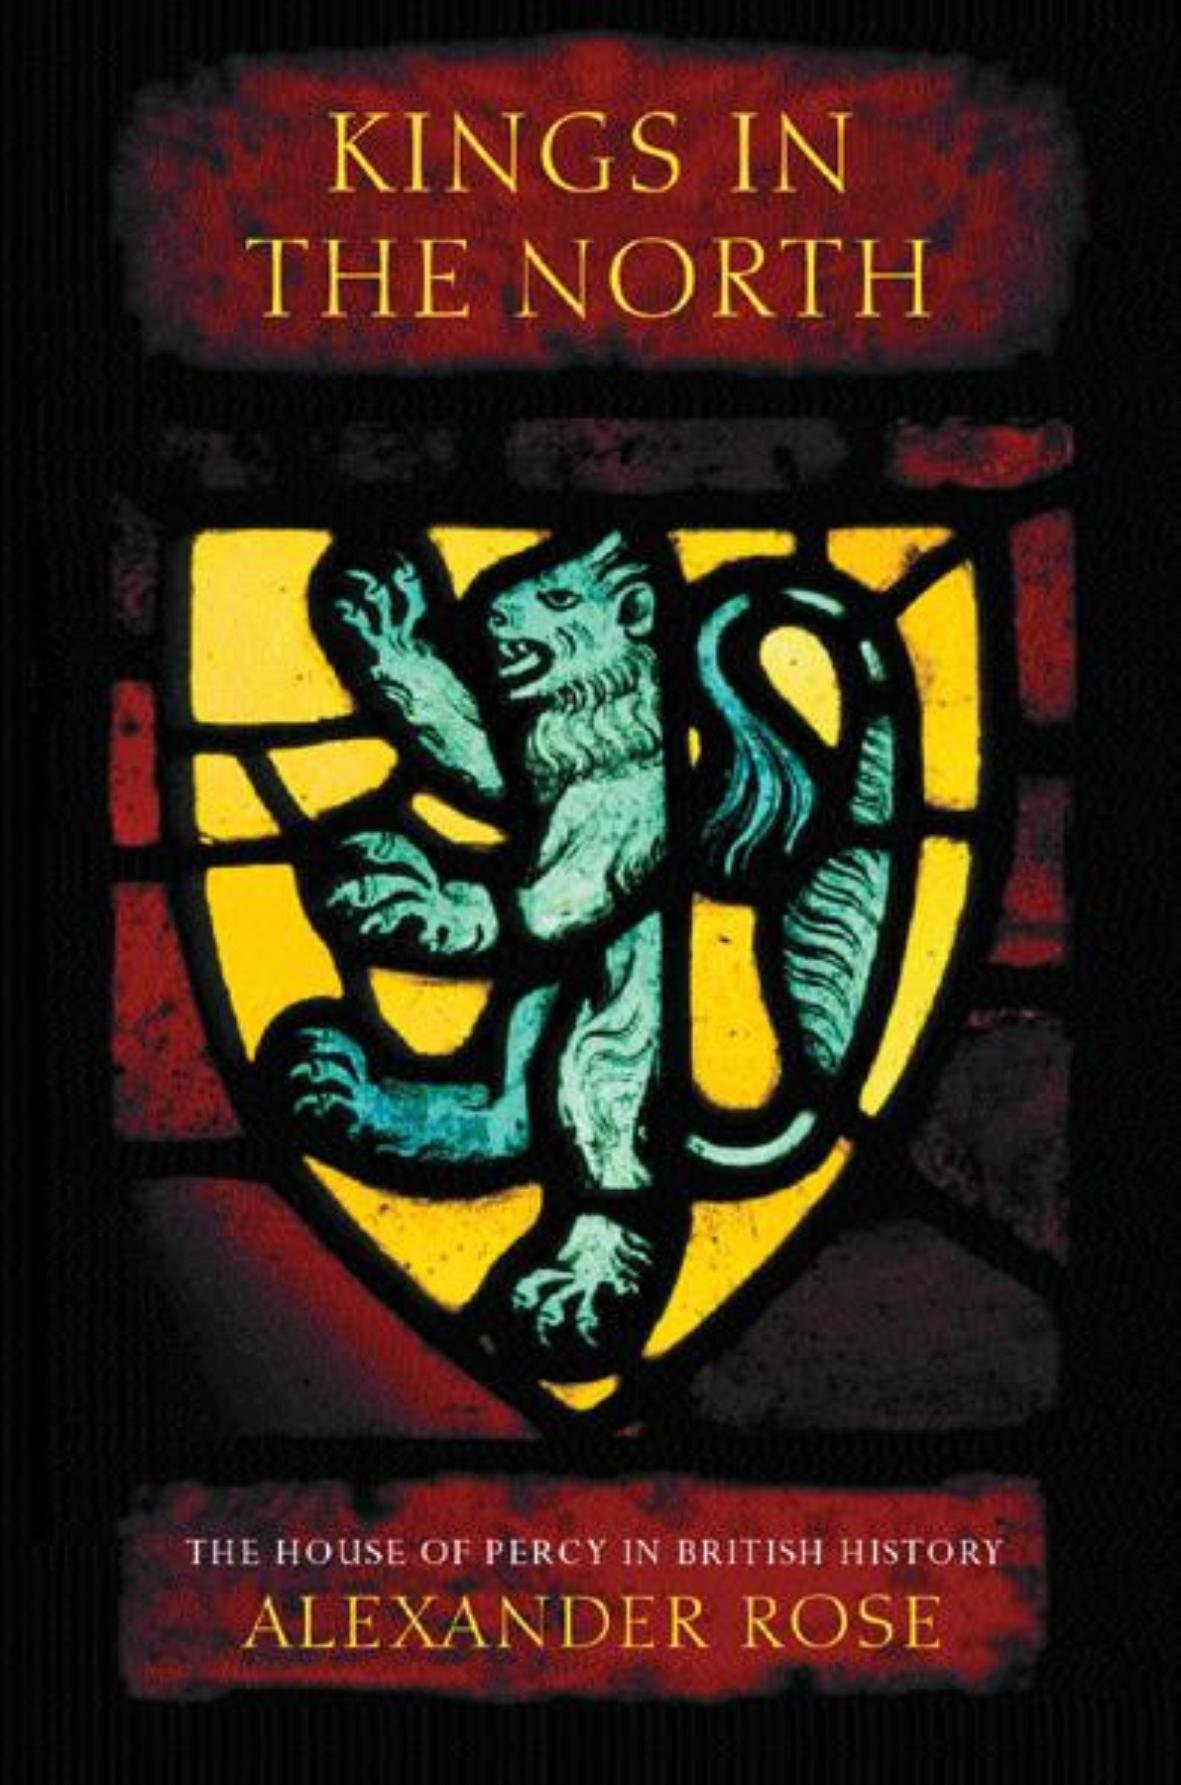 Amazon.com: Kings of the North (9780297818601): Alexander ...